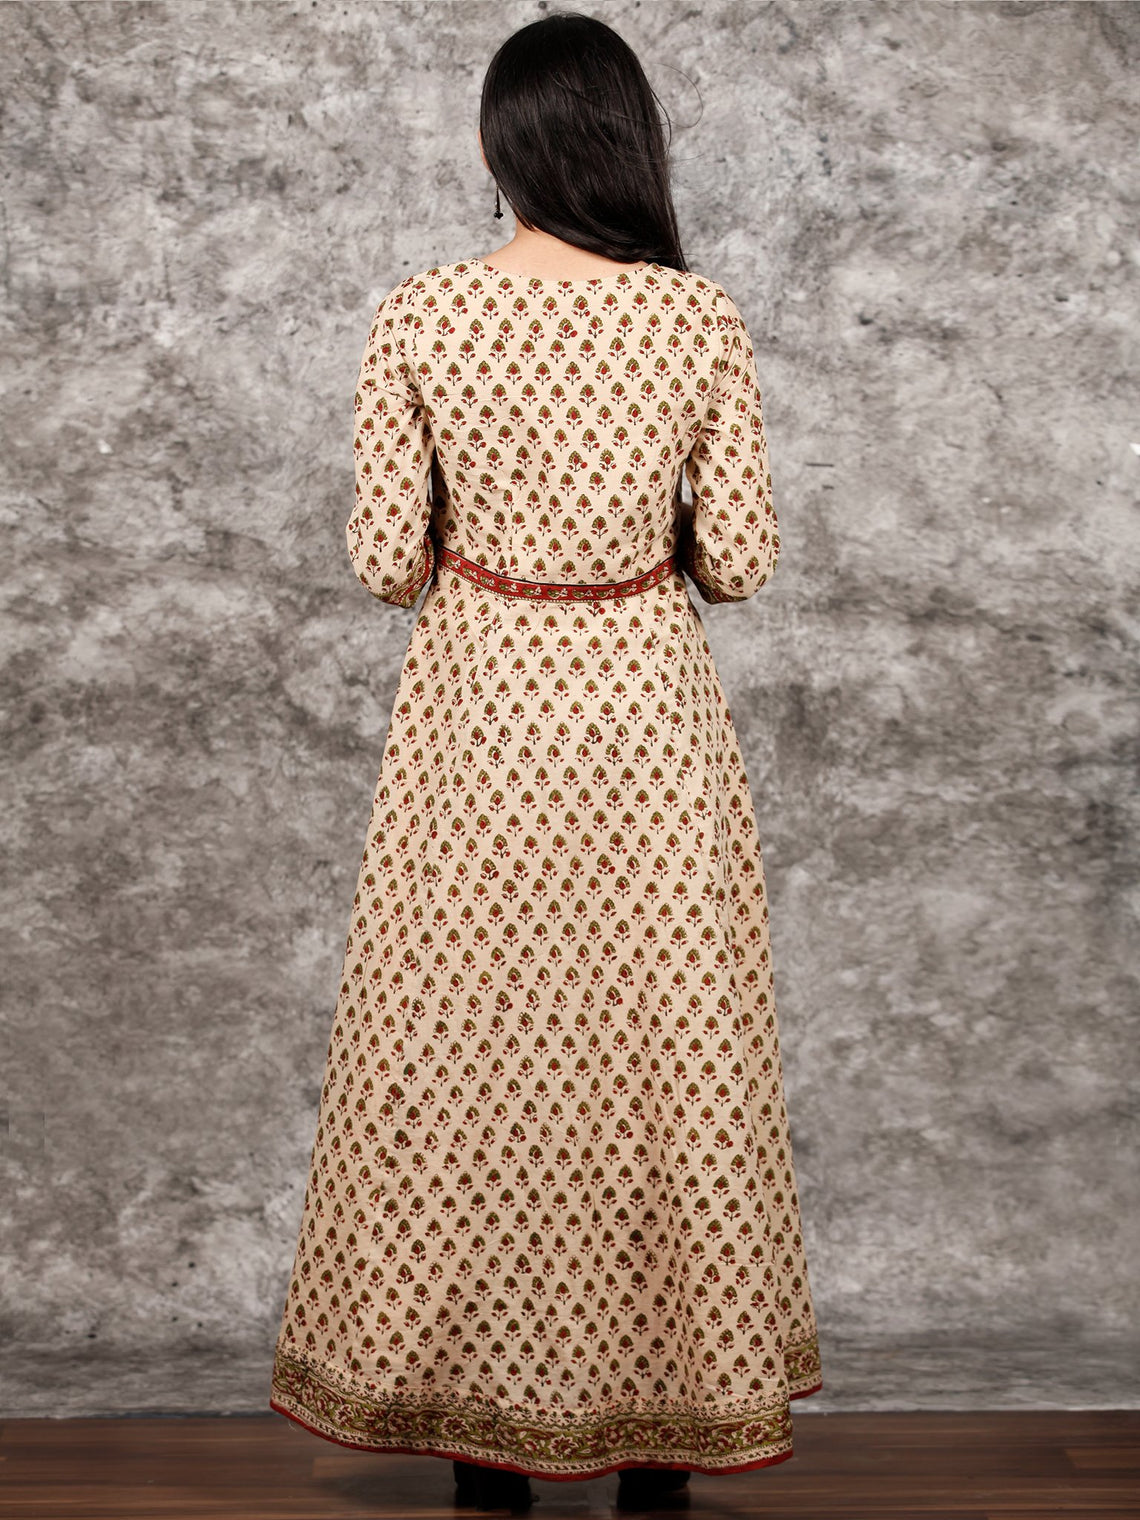 Naaz Aayna - Beige Rust Green Black Hand Block Printed Long Cotton Kali Dress With Full Lining - DS57F001